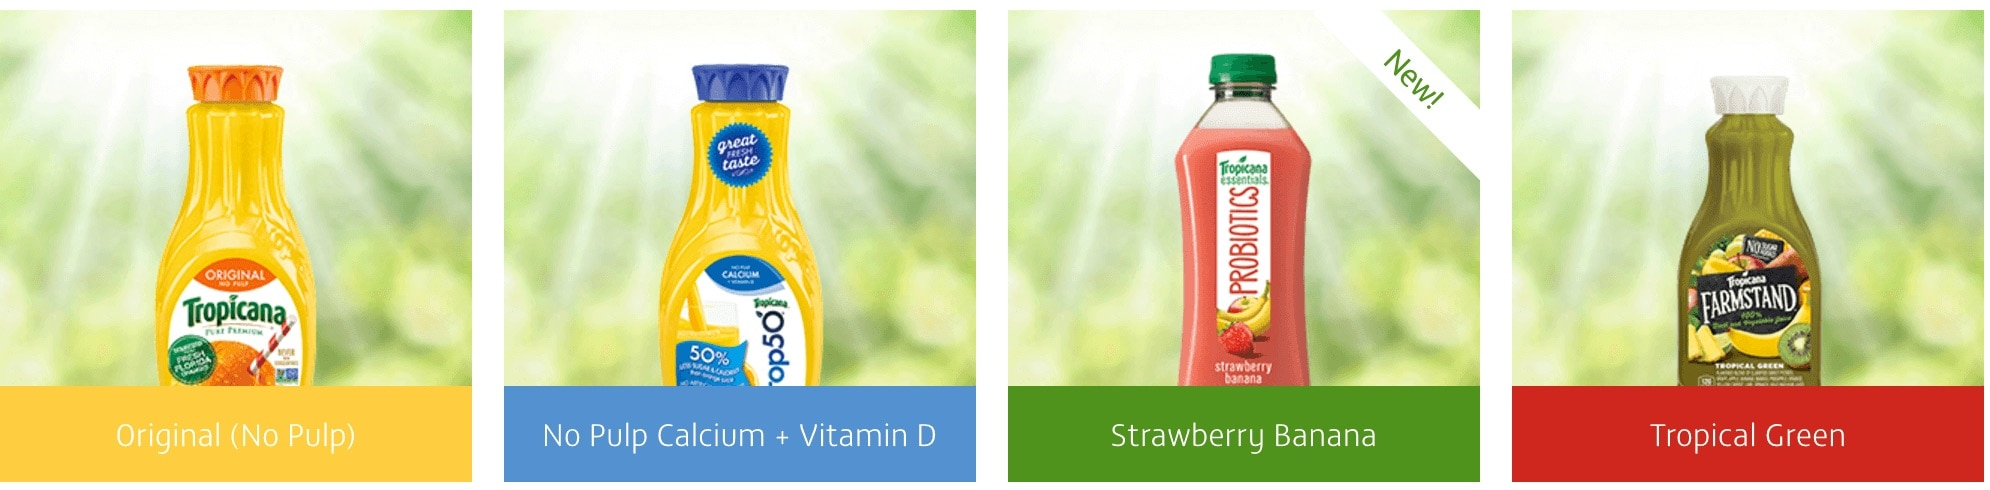 "tropicana marketing strategy Free download: 8 winning examples of brand strategy in packaging design   equity research"" to develop a multi-brand strategy for the tropicana brand."